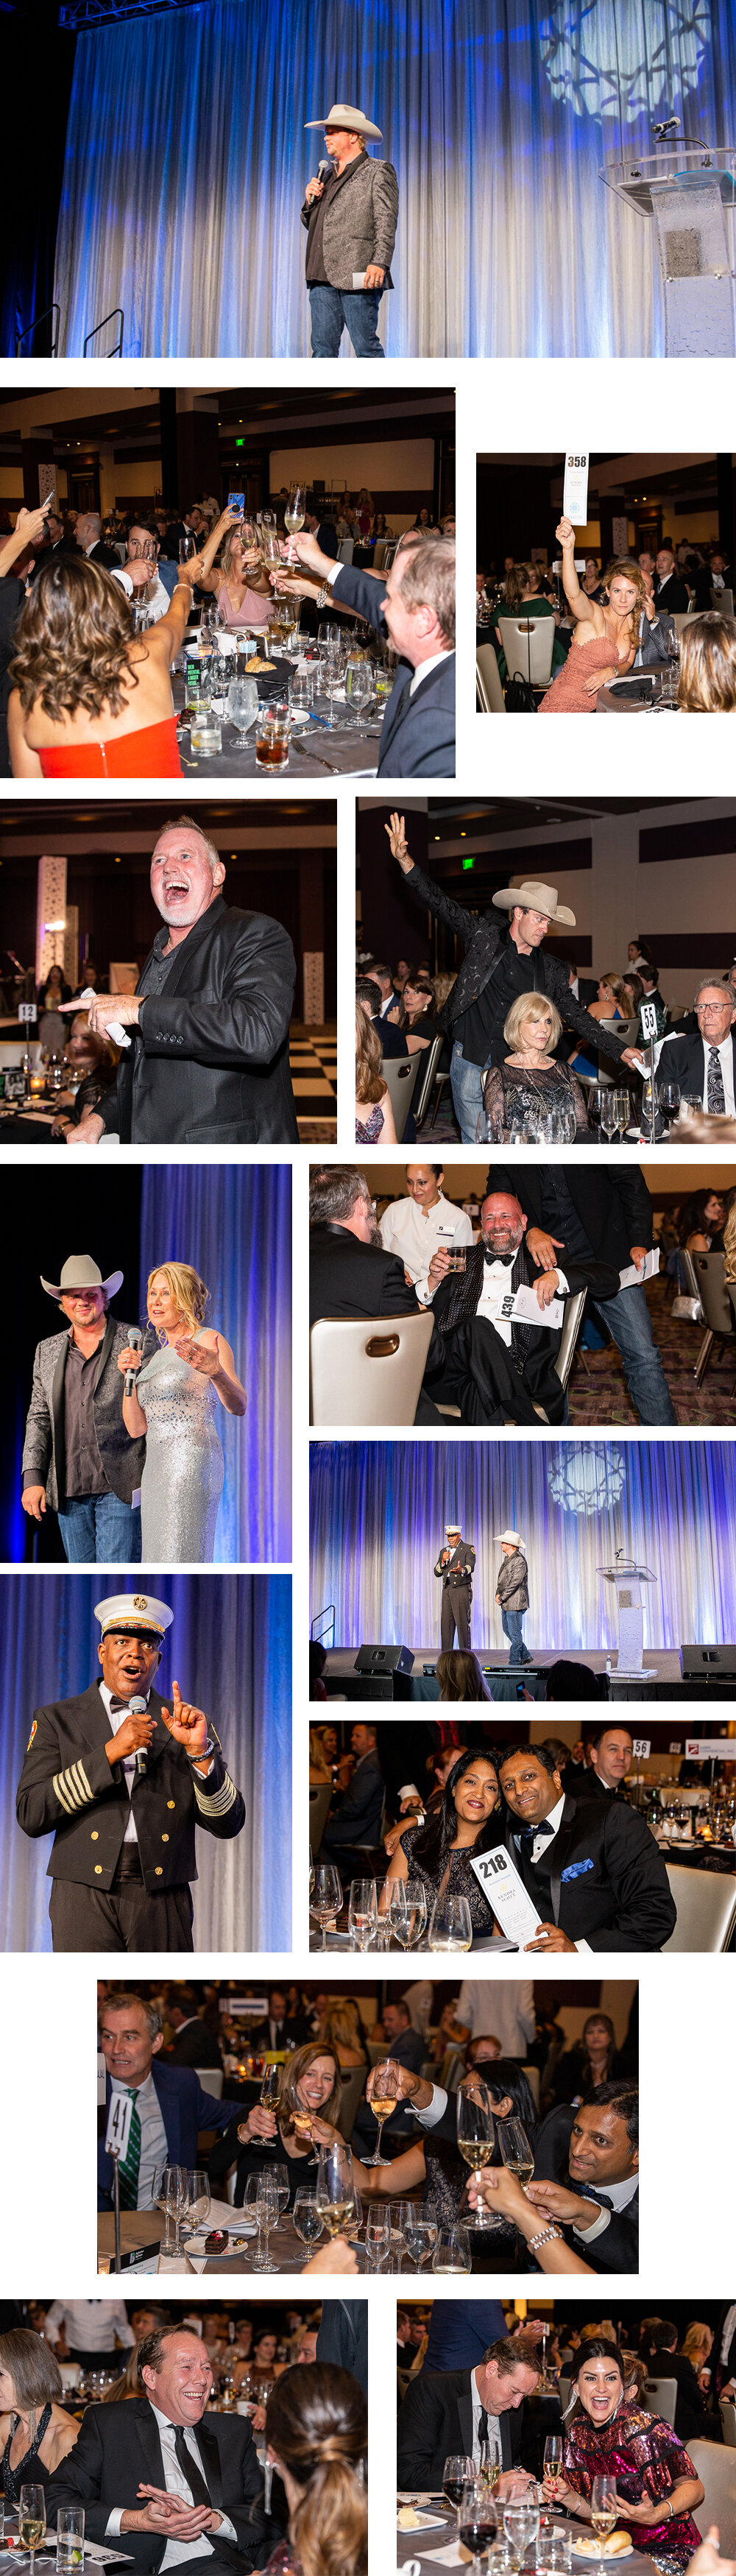 Live auction during the Big Brothers Big Sisters of Central Texas Ice Ball Gala. Photo by Erin Reas local event photographer